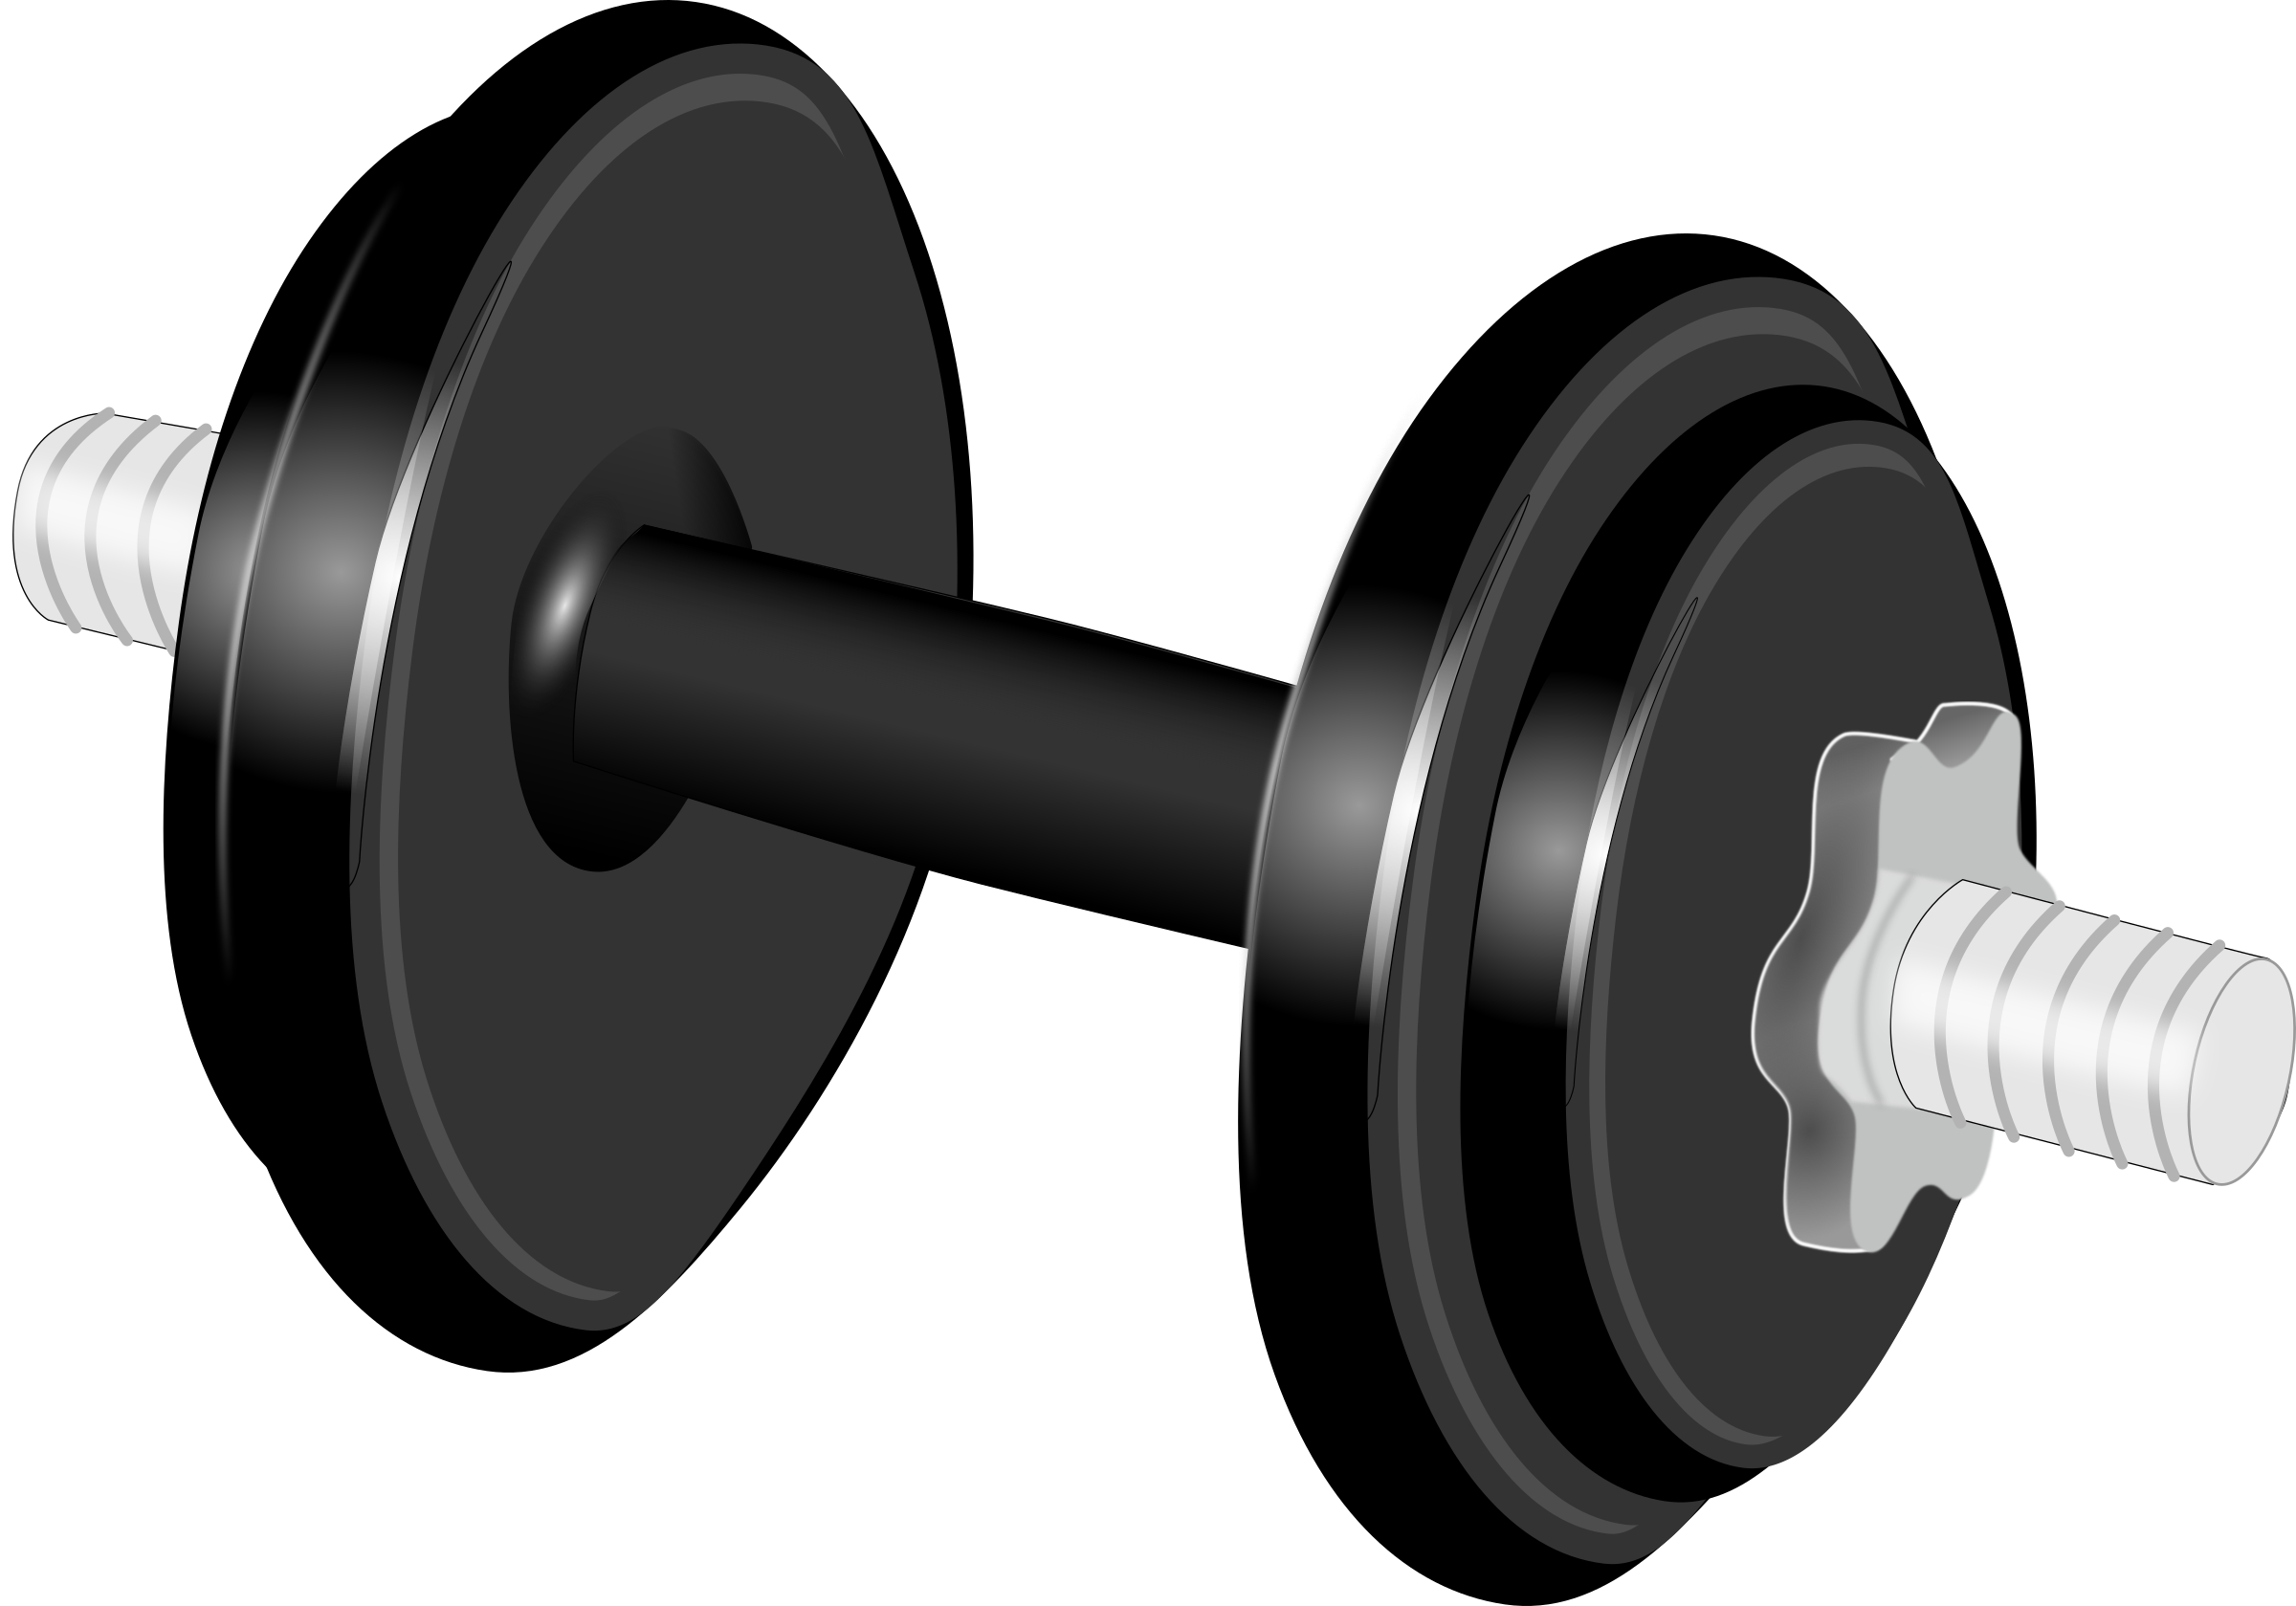 clipart dumbbell weightlifting clipart black and white weight lifting clip art women